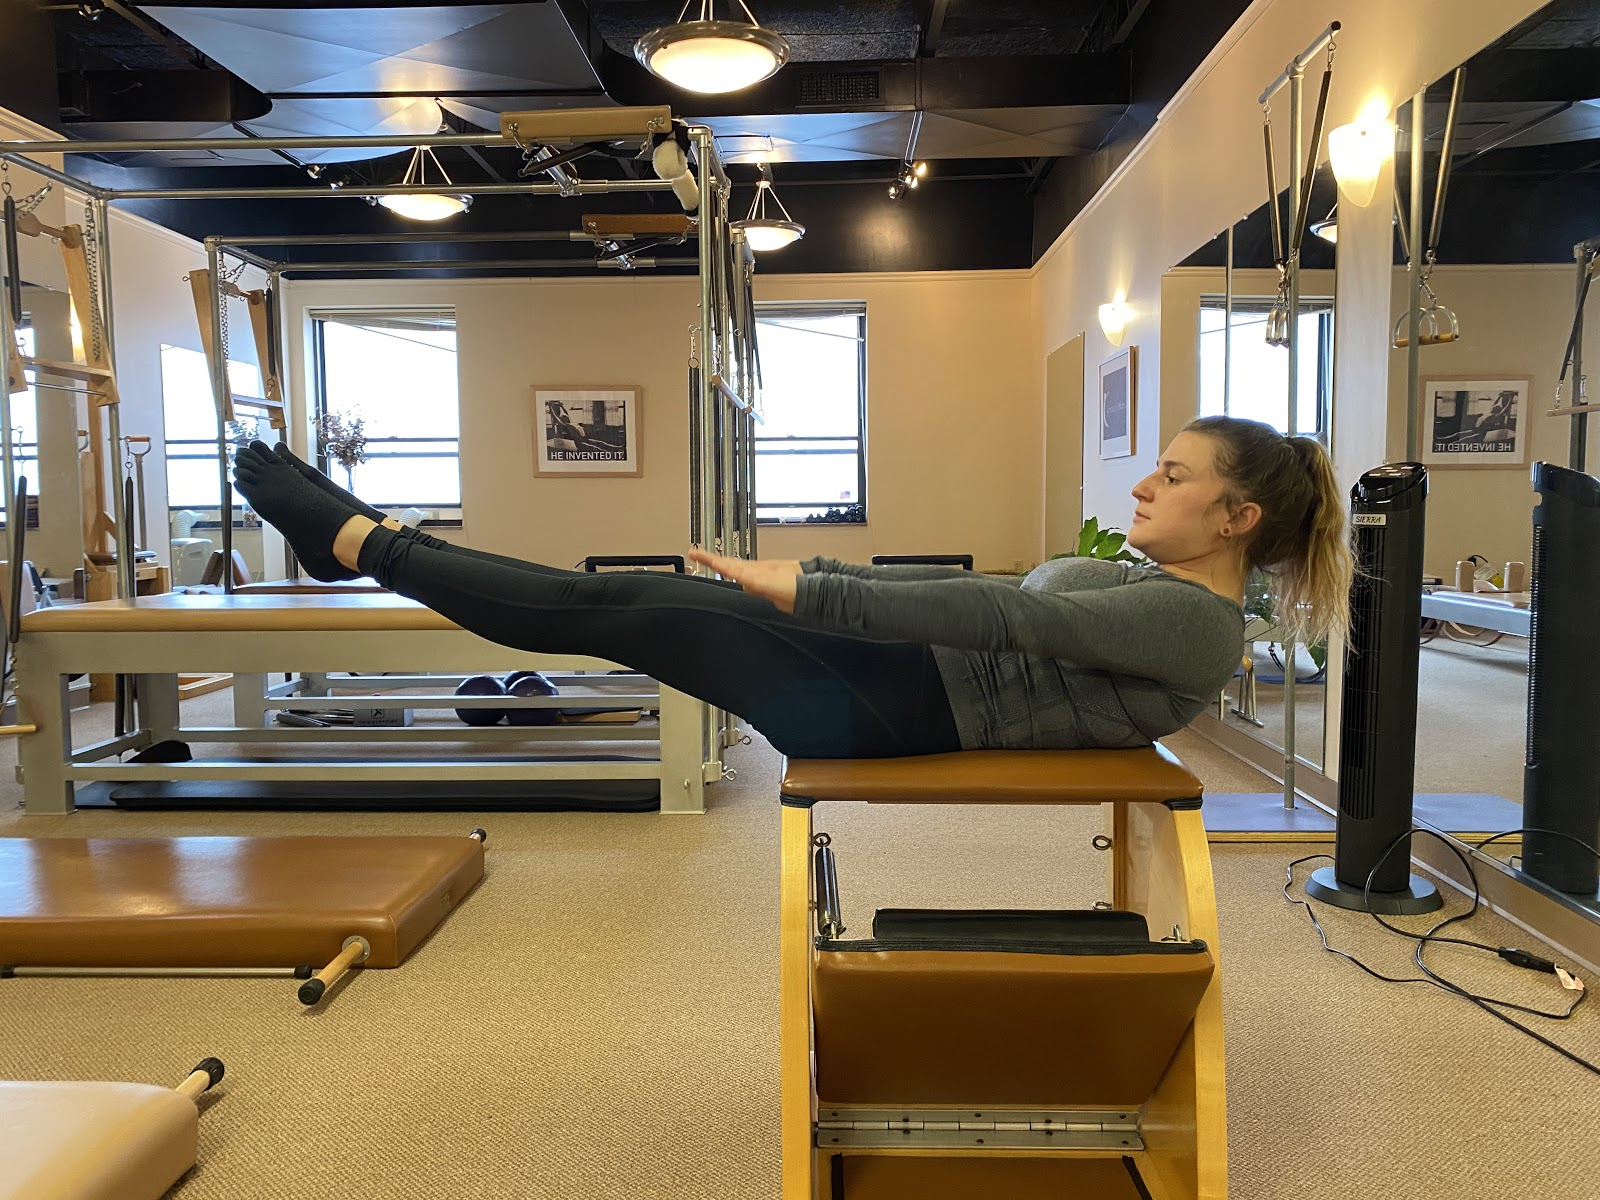 client exercising on equipment